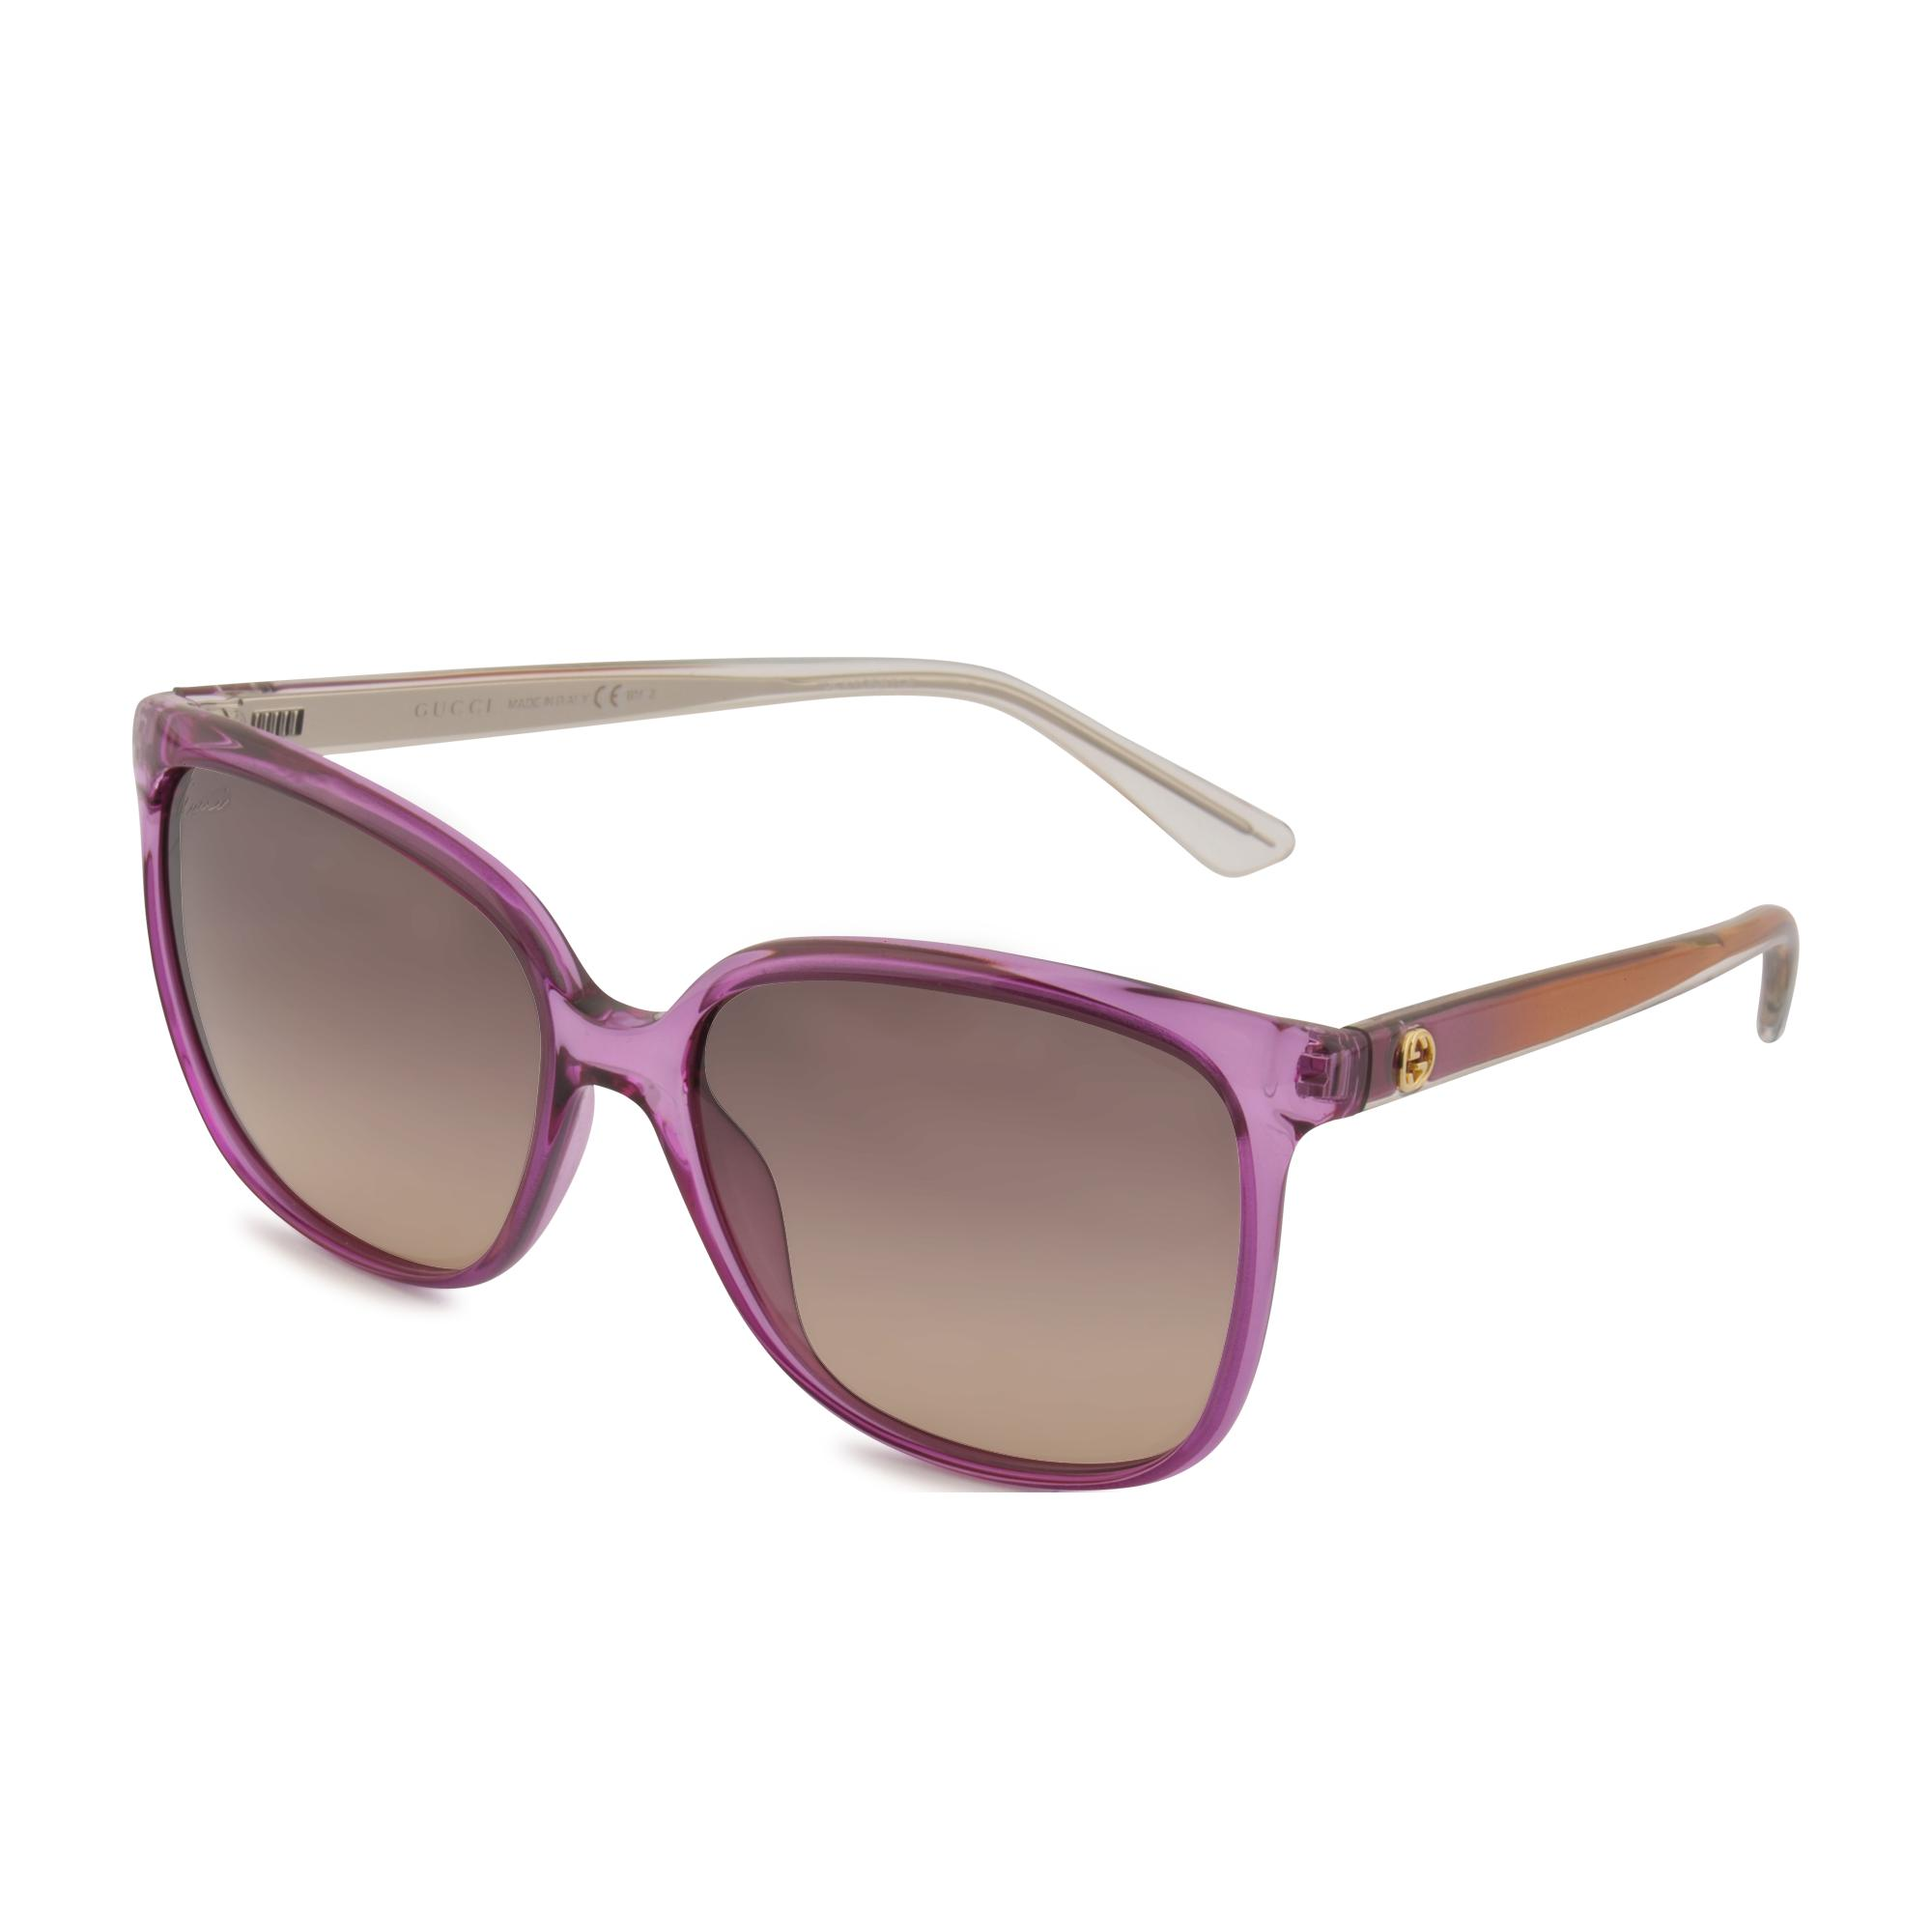 ddfb8c34718f5 Gucci Gg 3696 s Sunglasses in Purple - Lyst